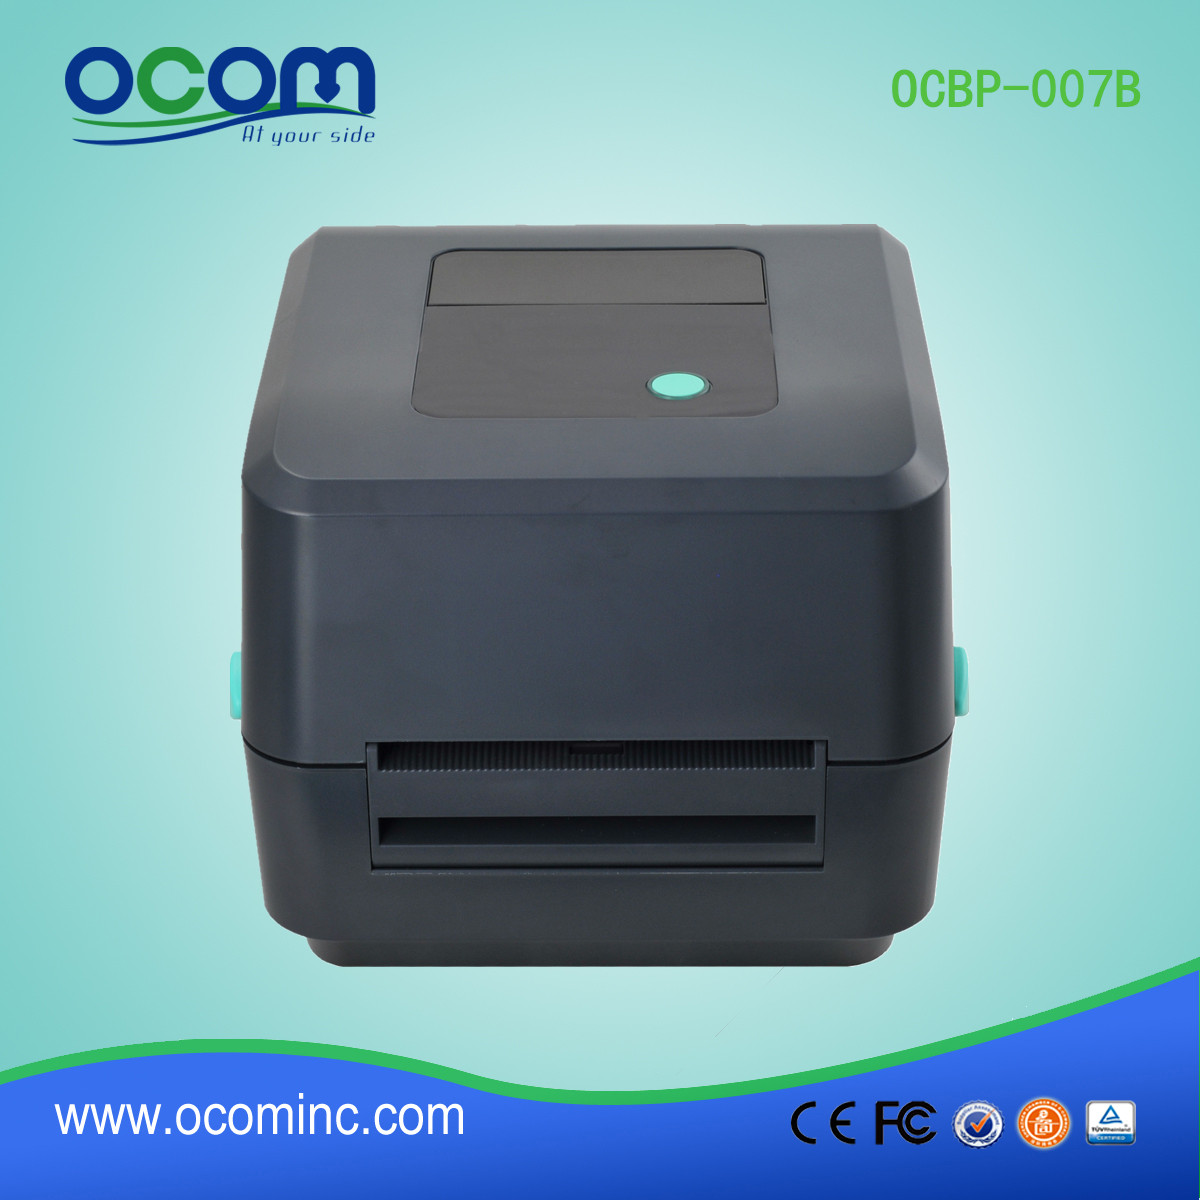 4 inch thermal sticker barcode label thermal printer machine for label printing